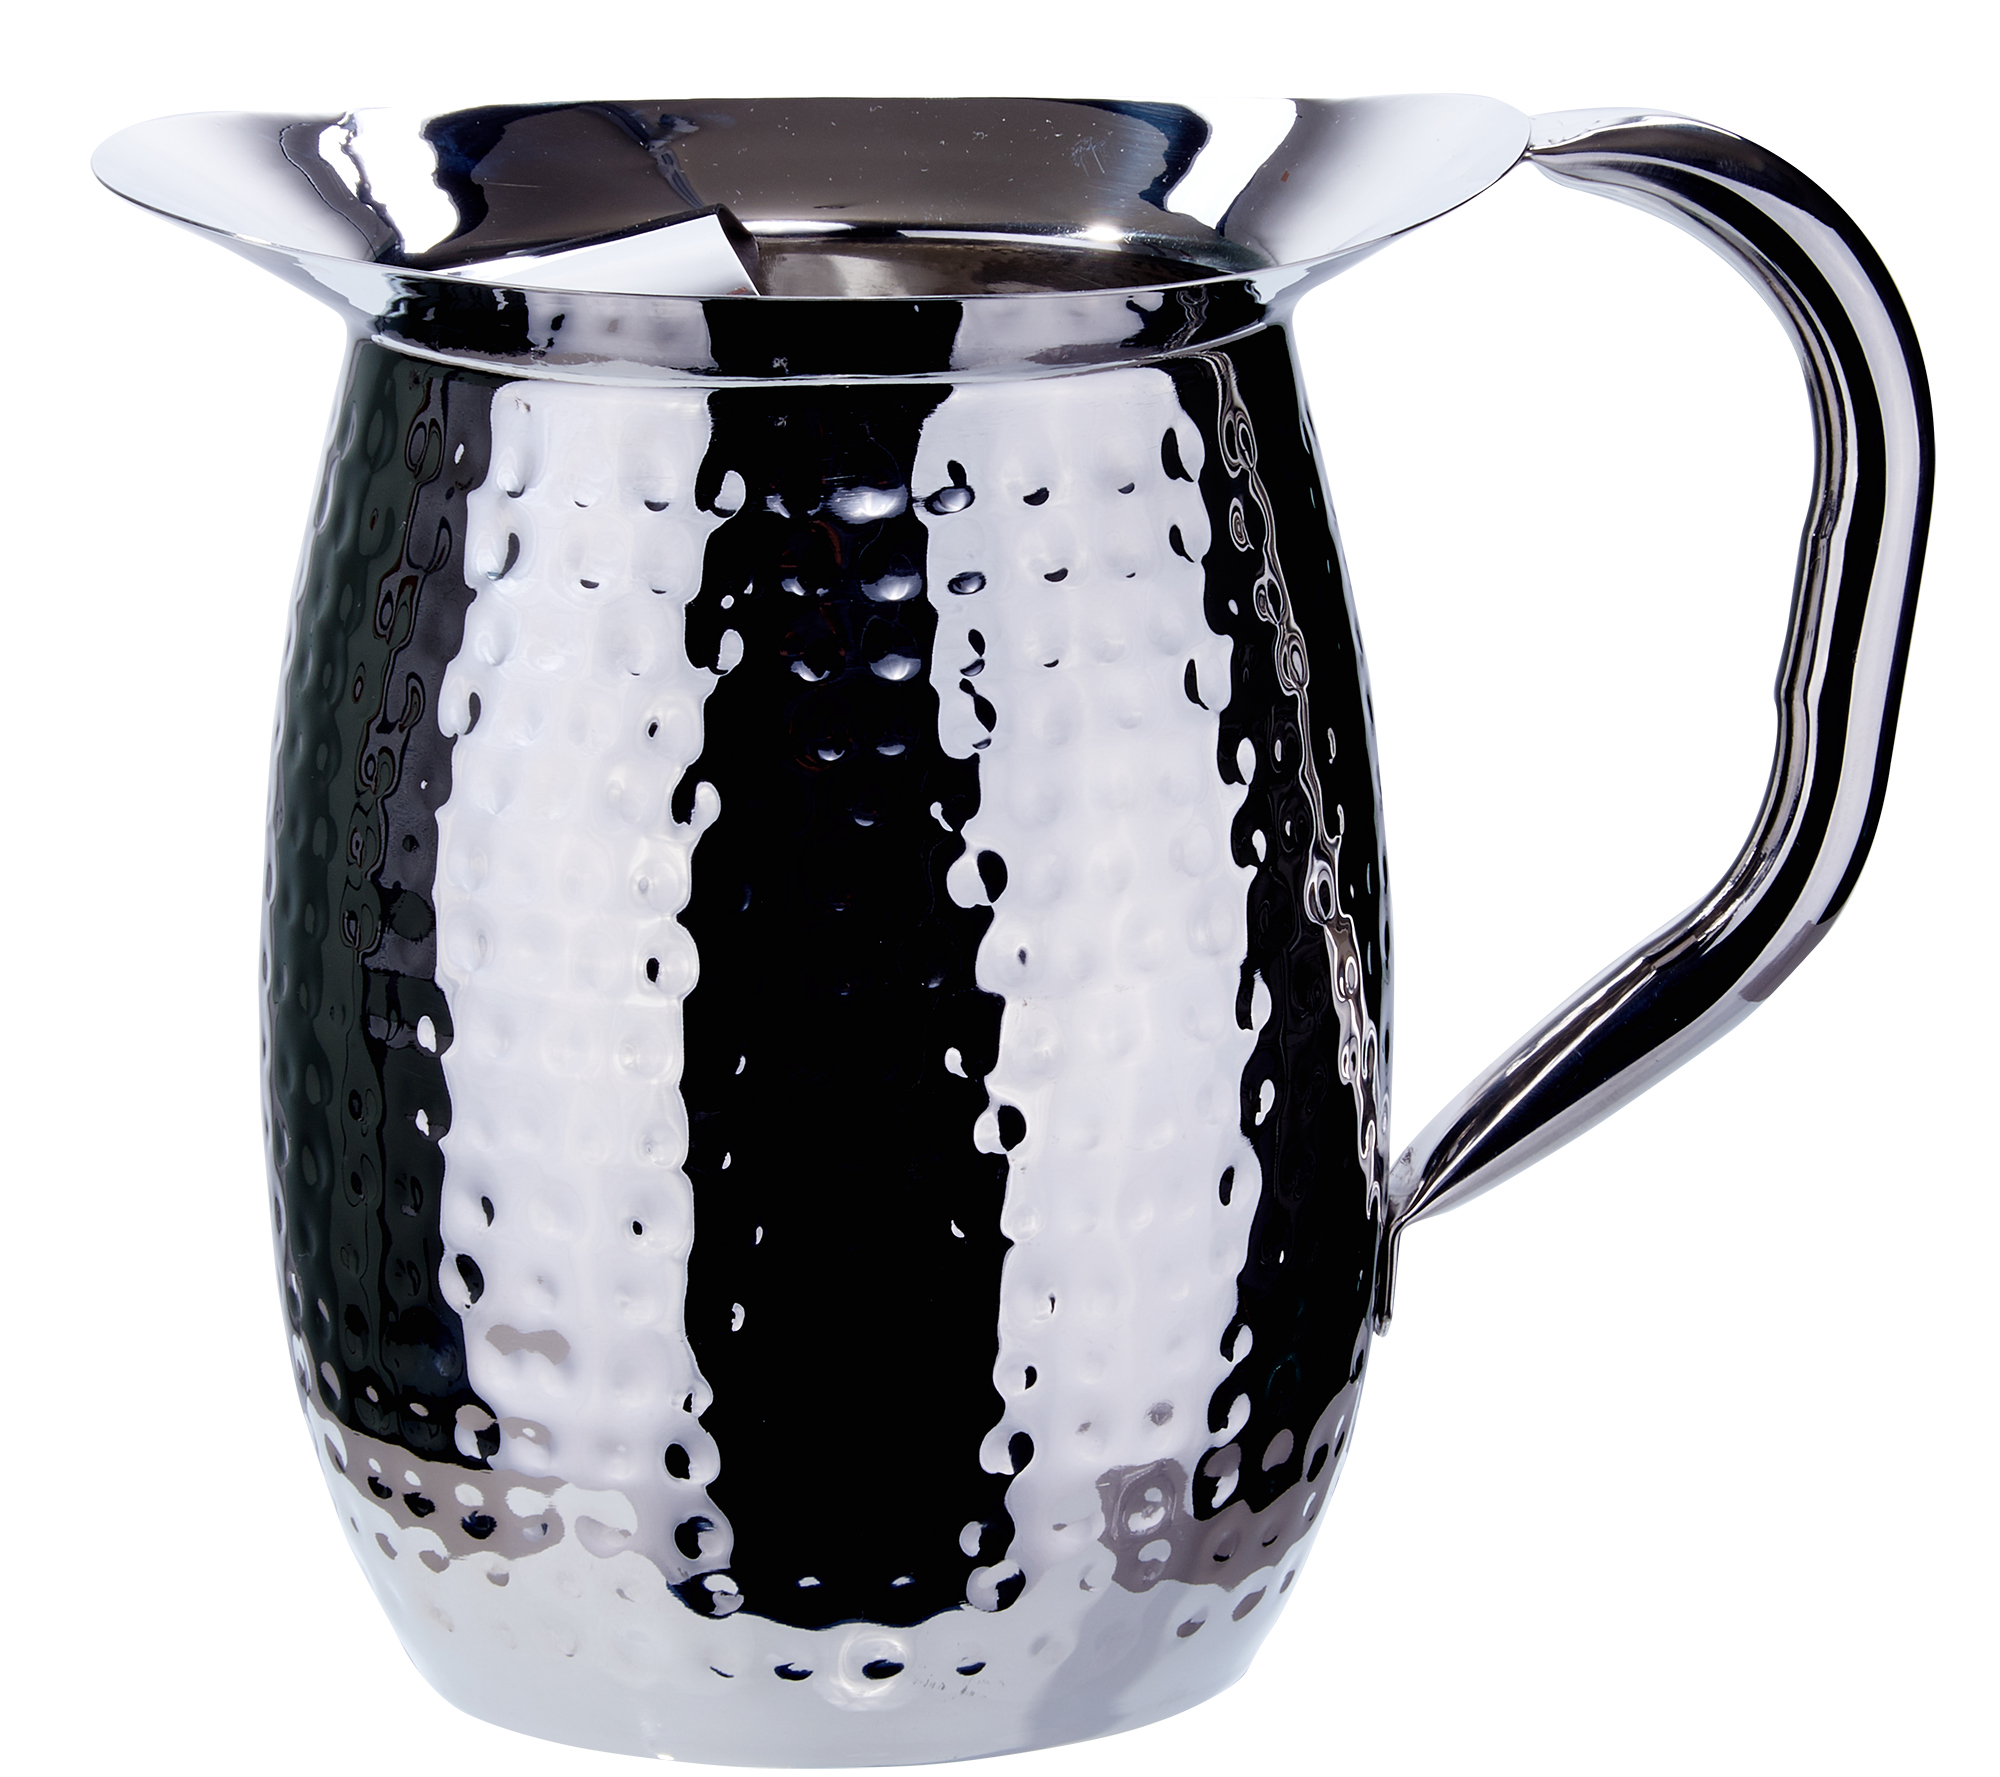 Winco WPB-3H pitchers-stainless steel